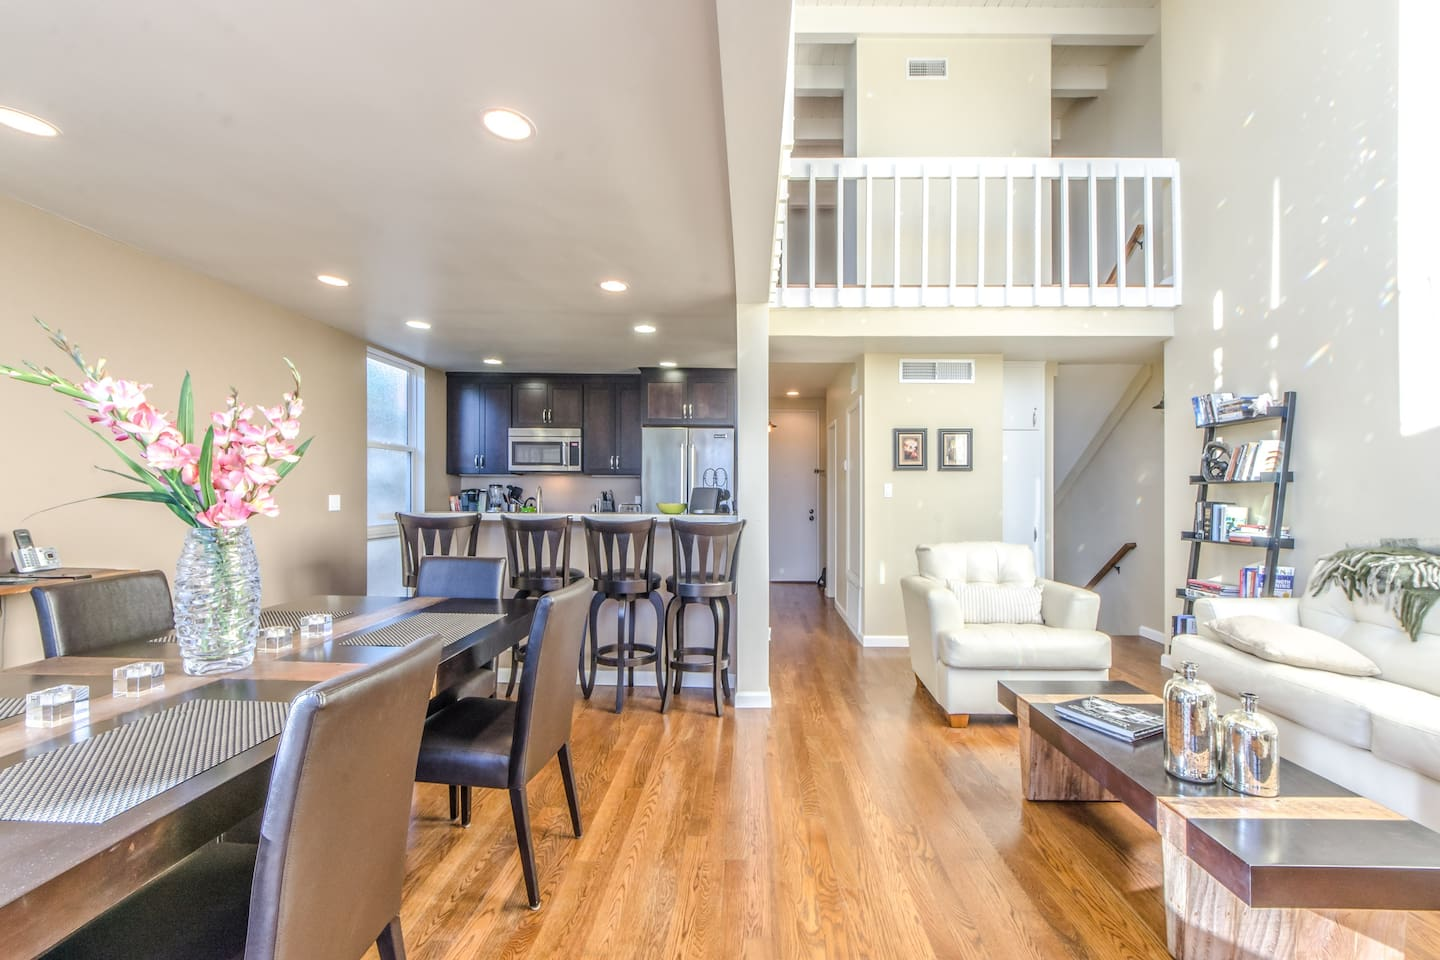 Wide angle view of living room, dining room, and upstairs